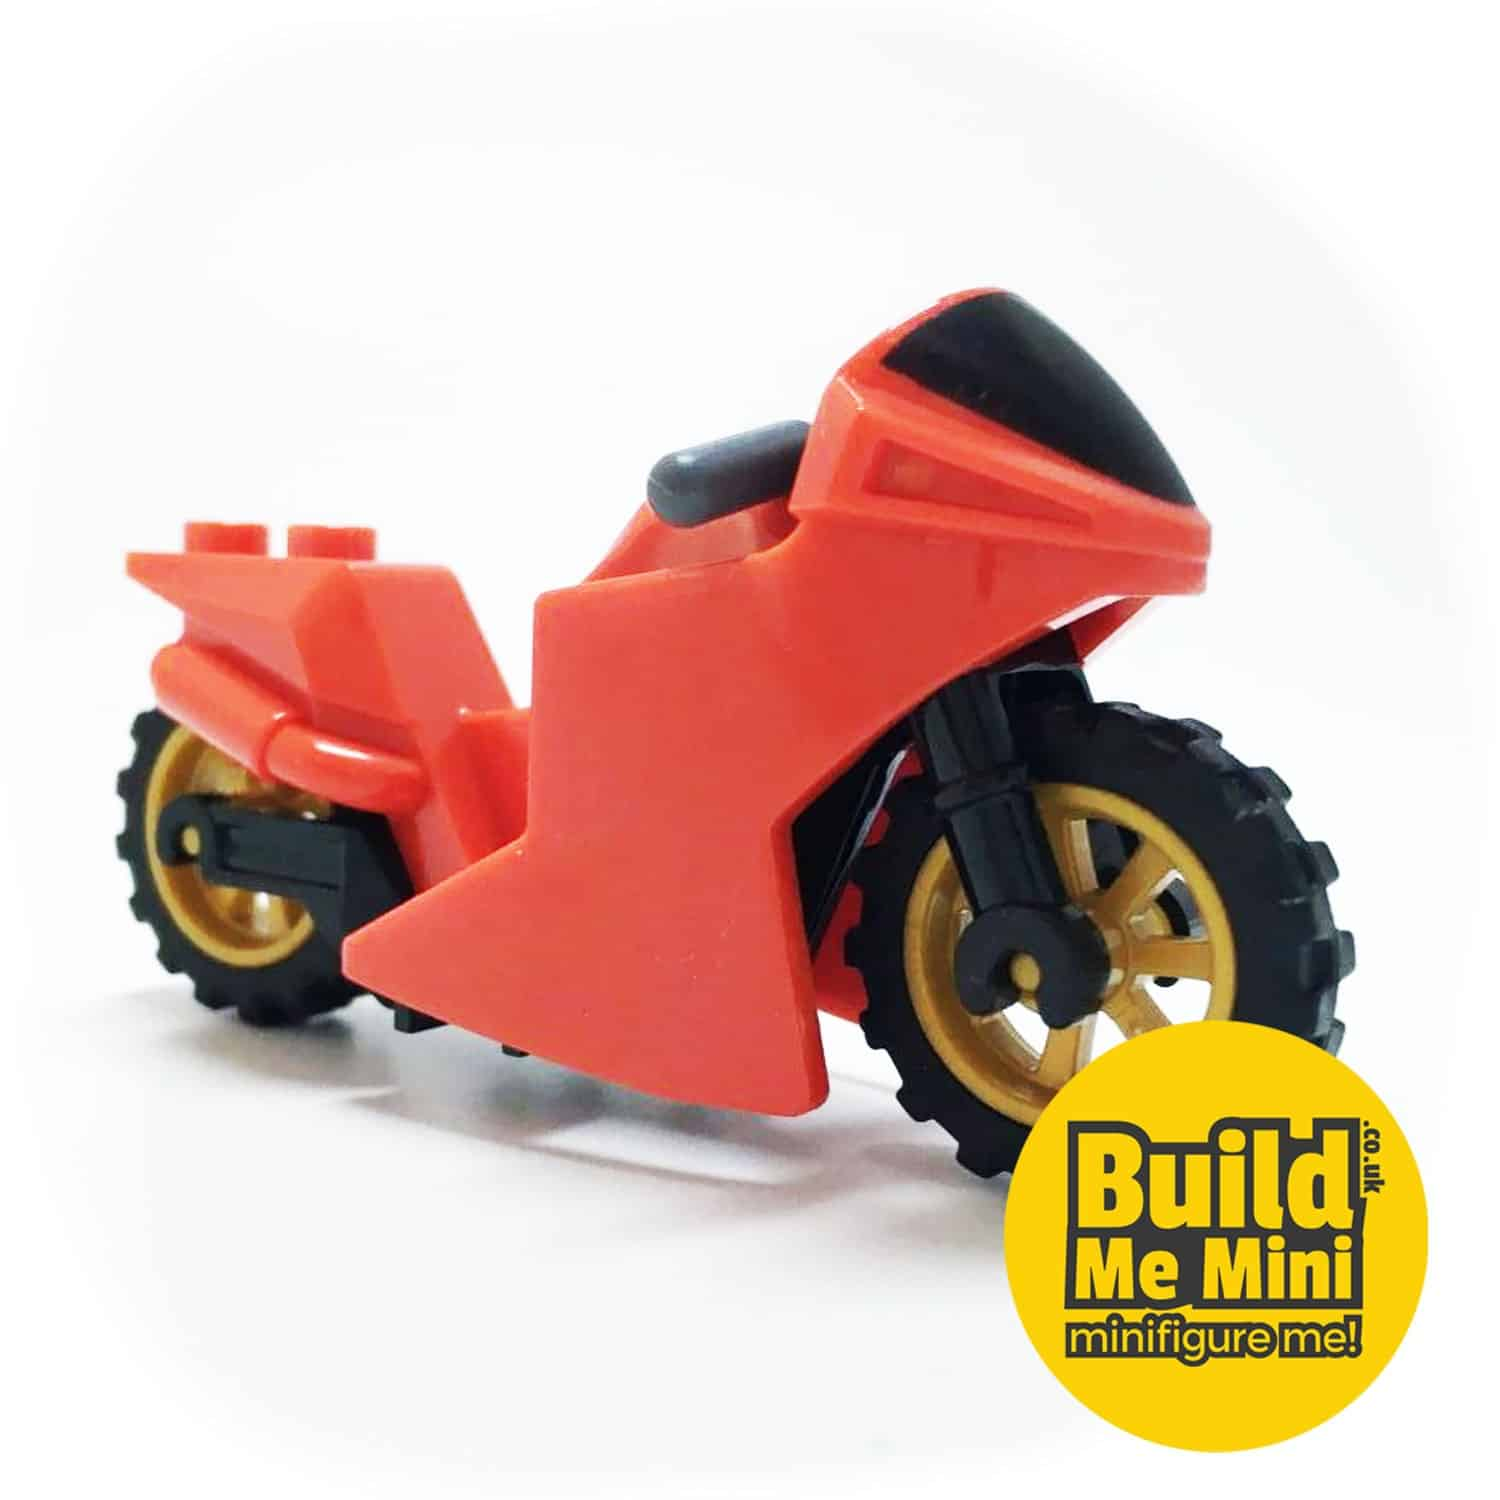 Lego Minifigure Scale Racing Motorbike (Multiple Colours)